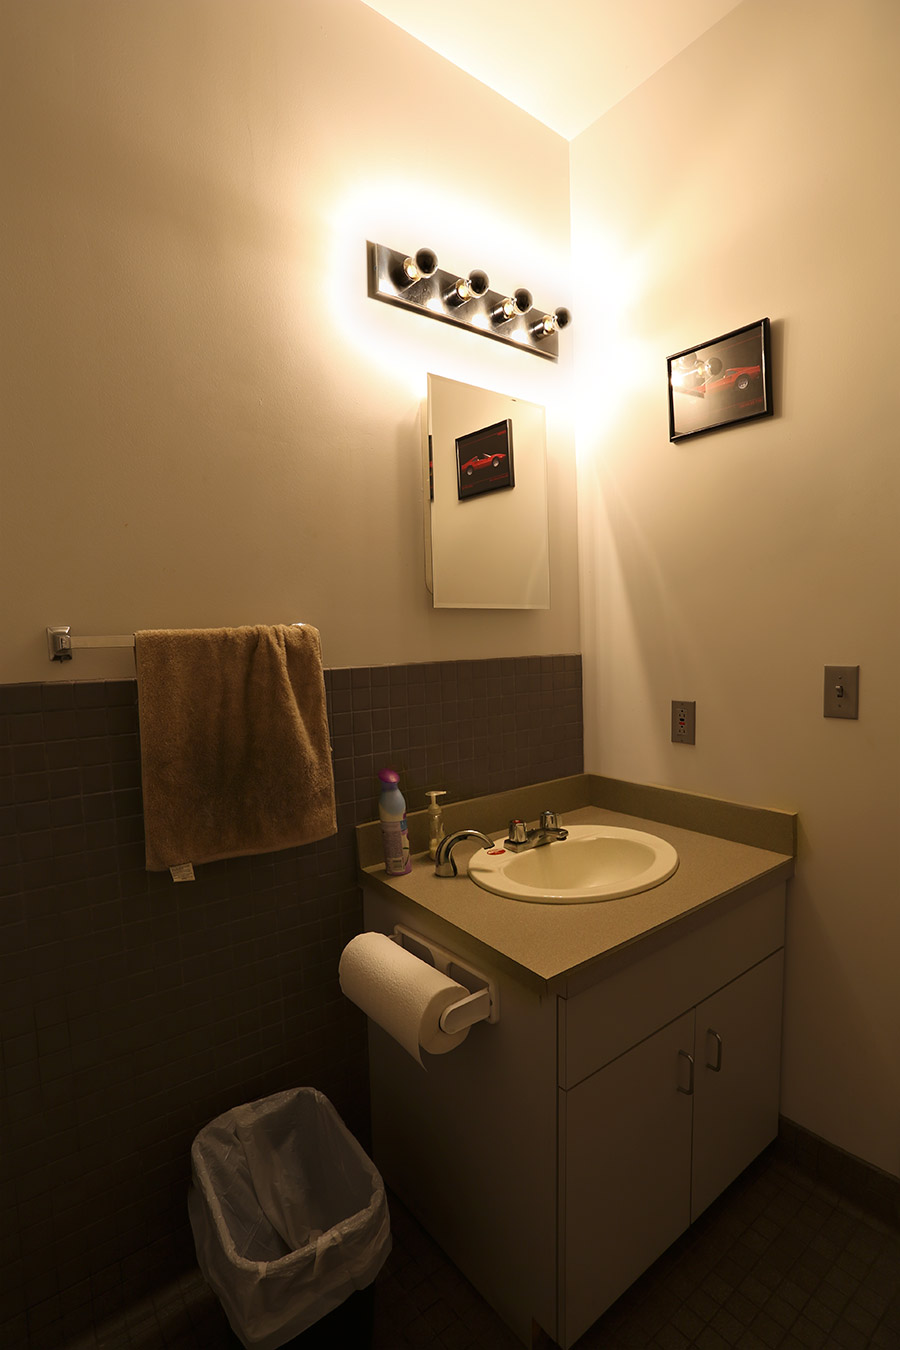 Comfortable Mobile Home Bathroom Remodeling Ideas Huge All Glass Bathroom Mirrors Regular Steam Bath Unit Kolkata Design Elements Bathroom Vanities Young Axor Bathroom Sink Faucets ColouredMajestic Kitchen And Bath Nj Reviews A19 LED Bulb   Silver Tipped LED Filament Bulb   50 Watt ..